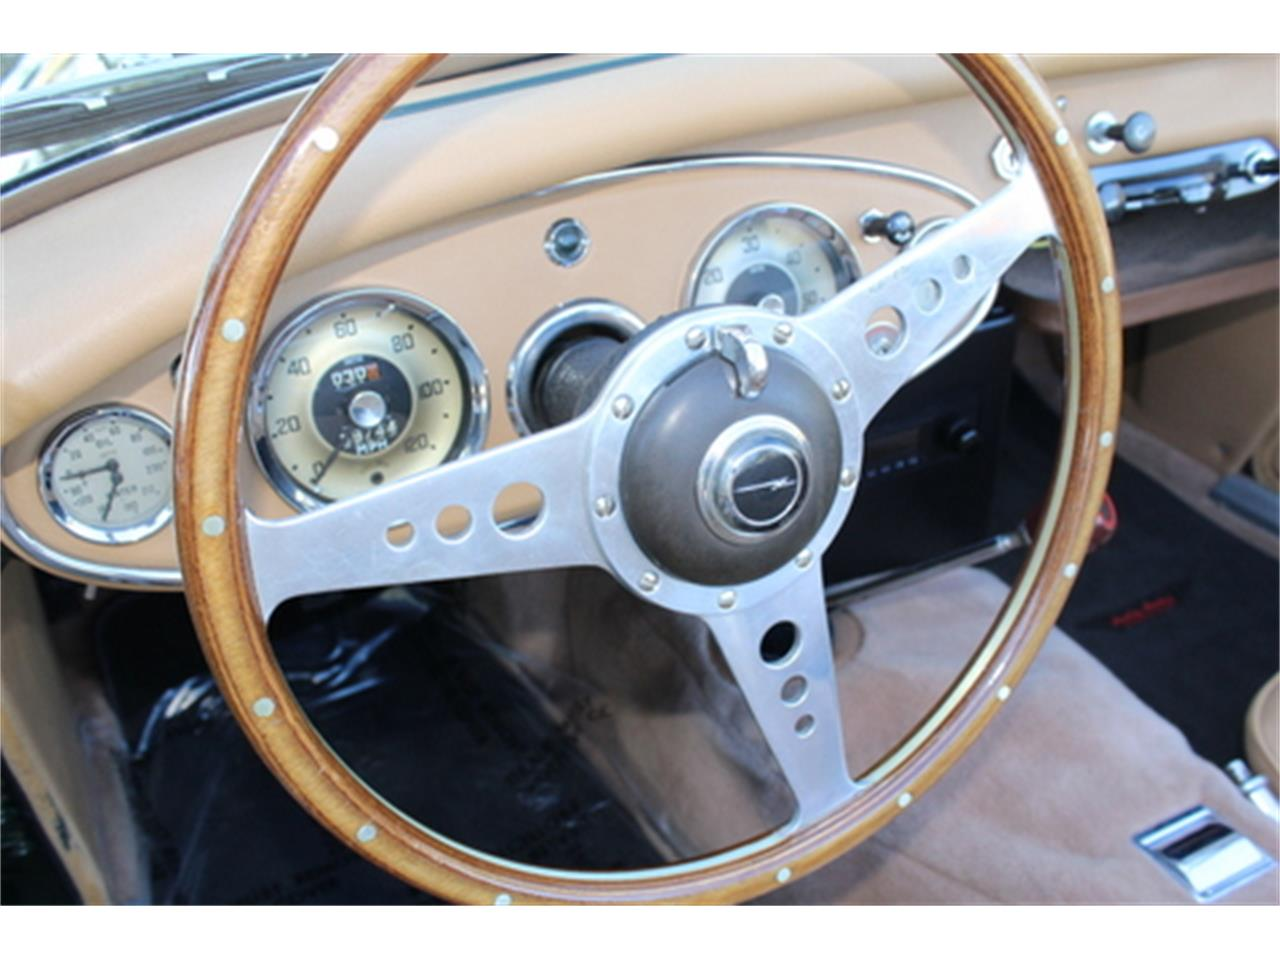 Large Picture of Classic 1961 Austin-Healey 3000 Mk I BT7 located in Roswell Georgia - $66,950.00 Offered by Fraser Dante - KPWR